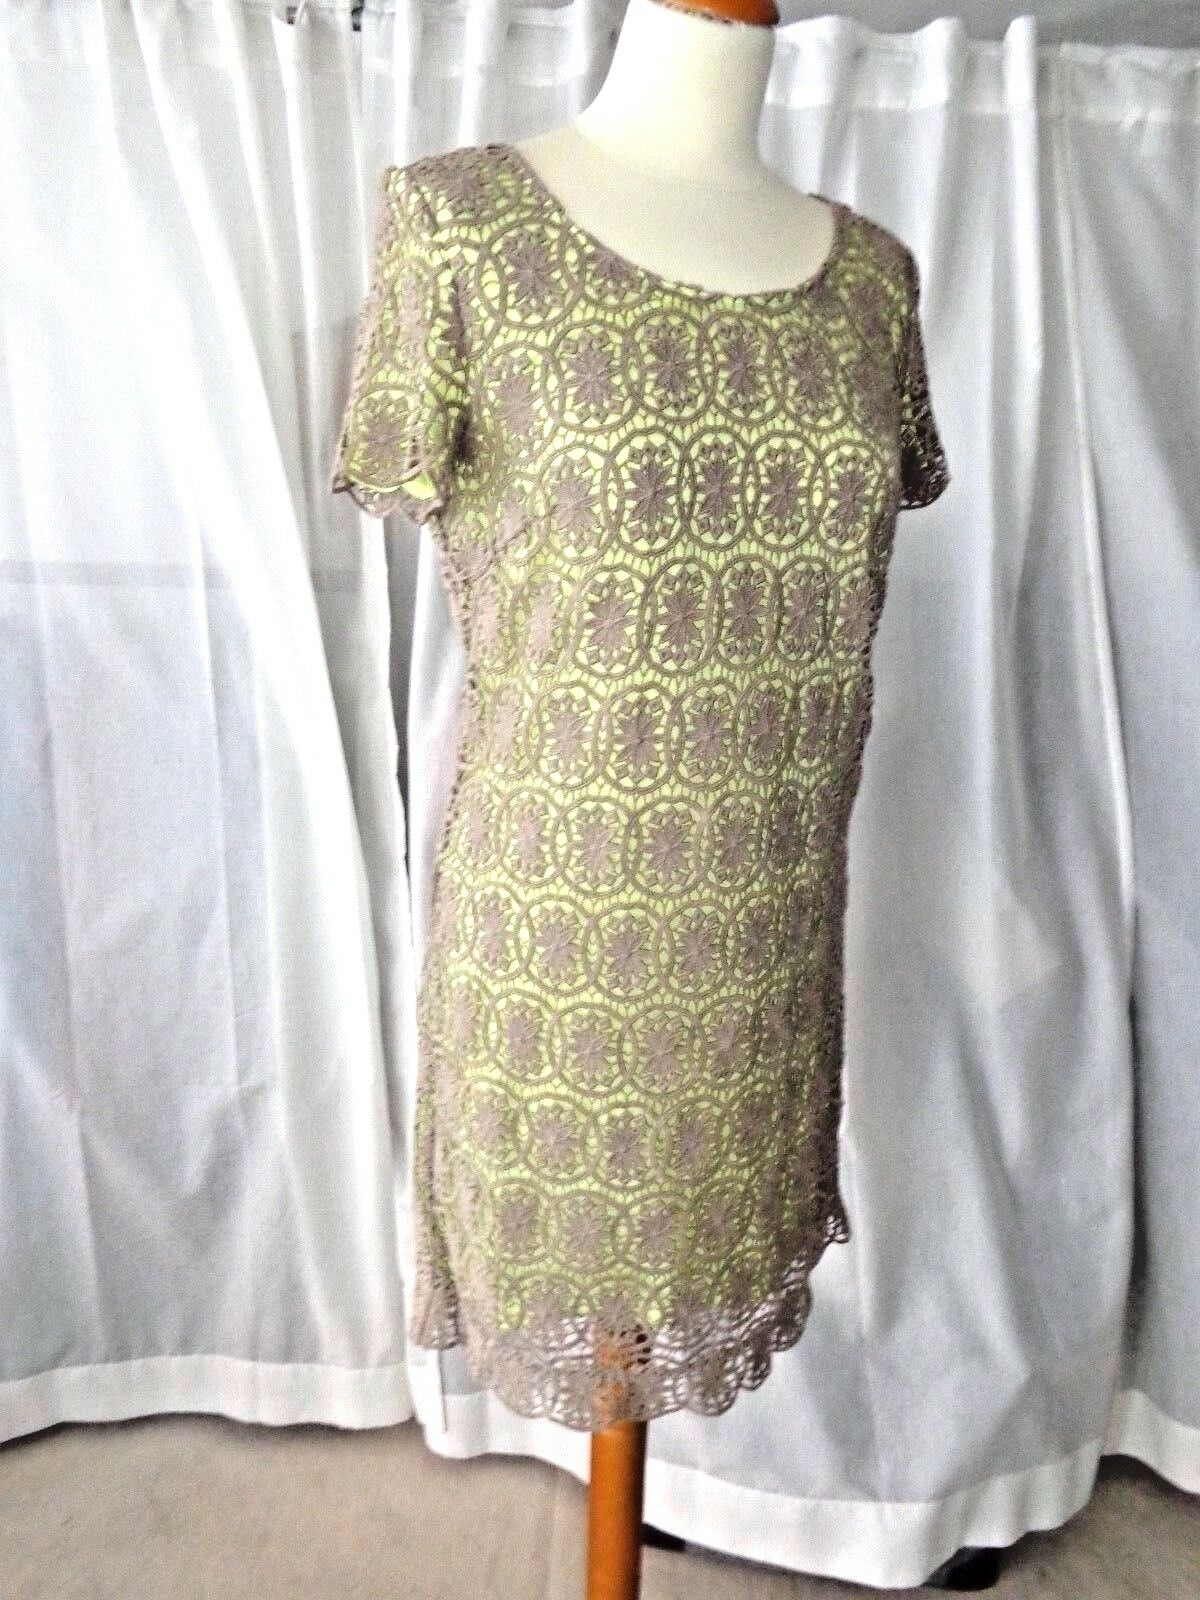 Designer Kleid PATRIZIA PEPE gr 36 (IT 42) abito dress rôbe luxus